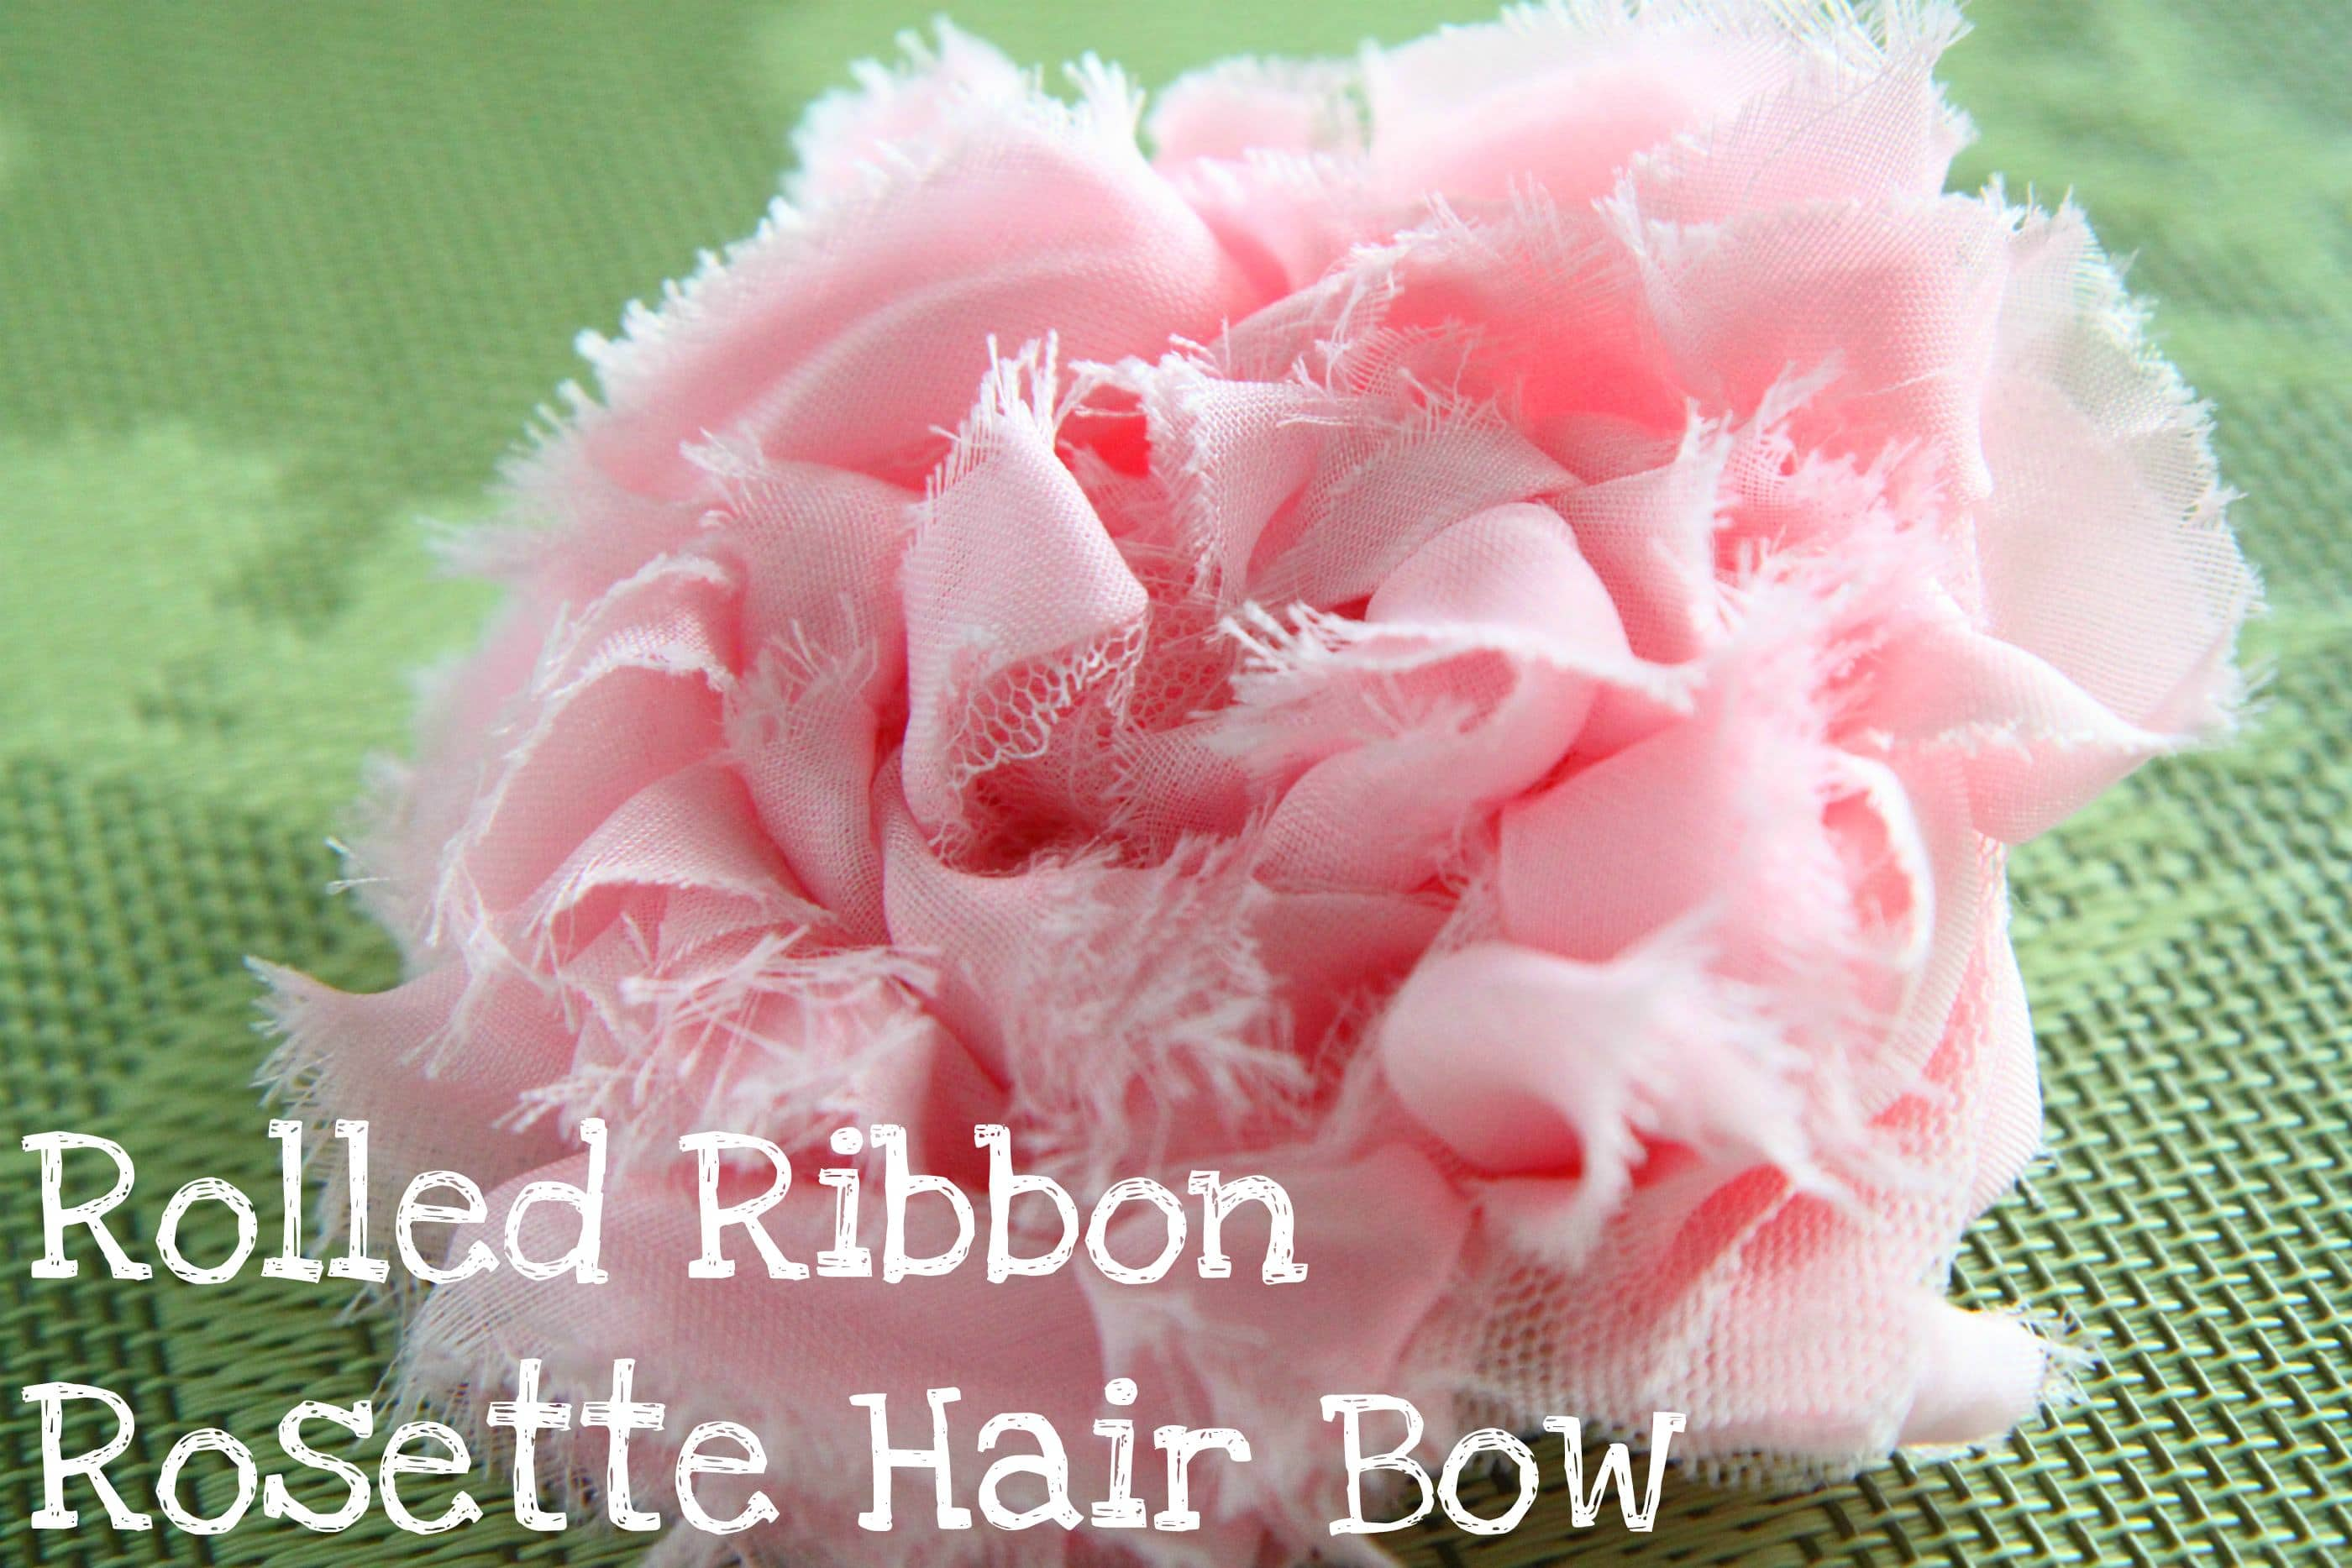 Rolled Ribbon Rosette Hair Accessory Tutorial